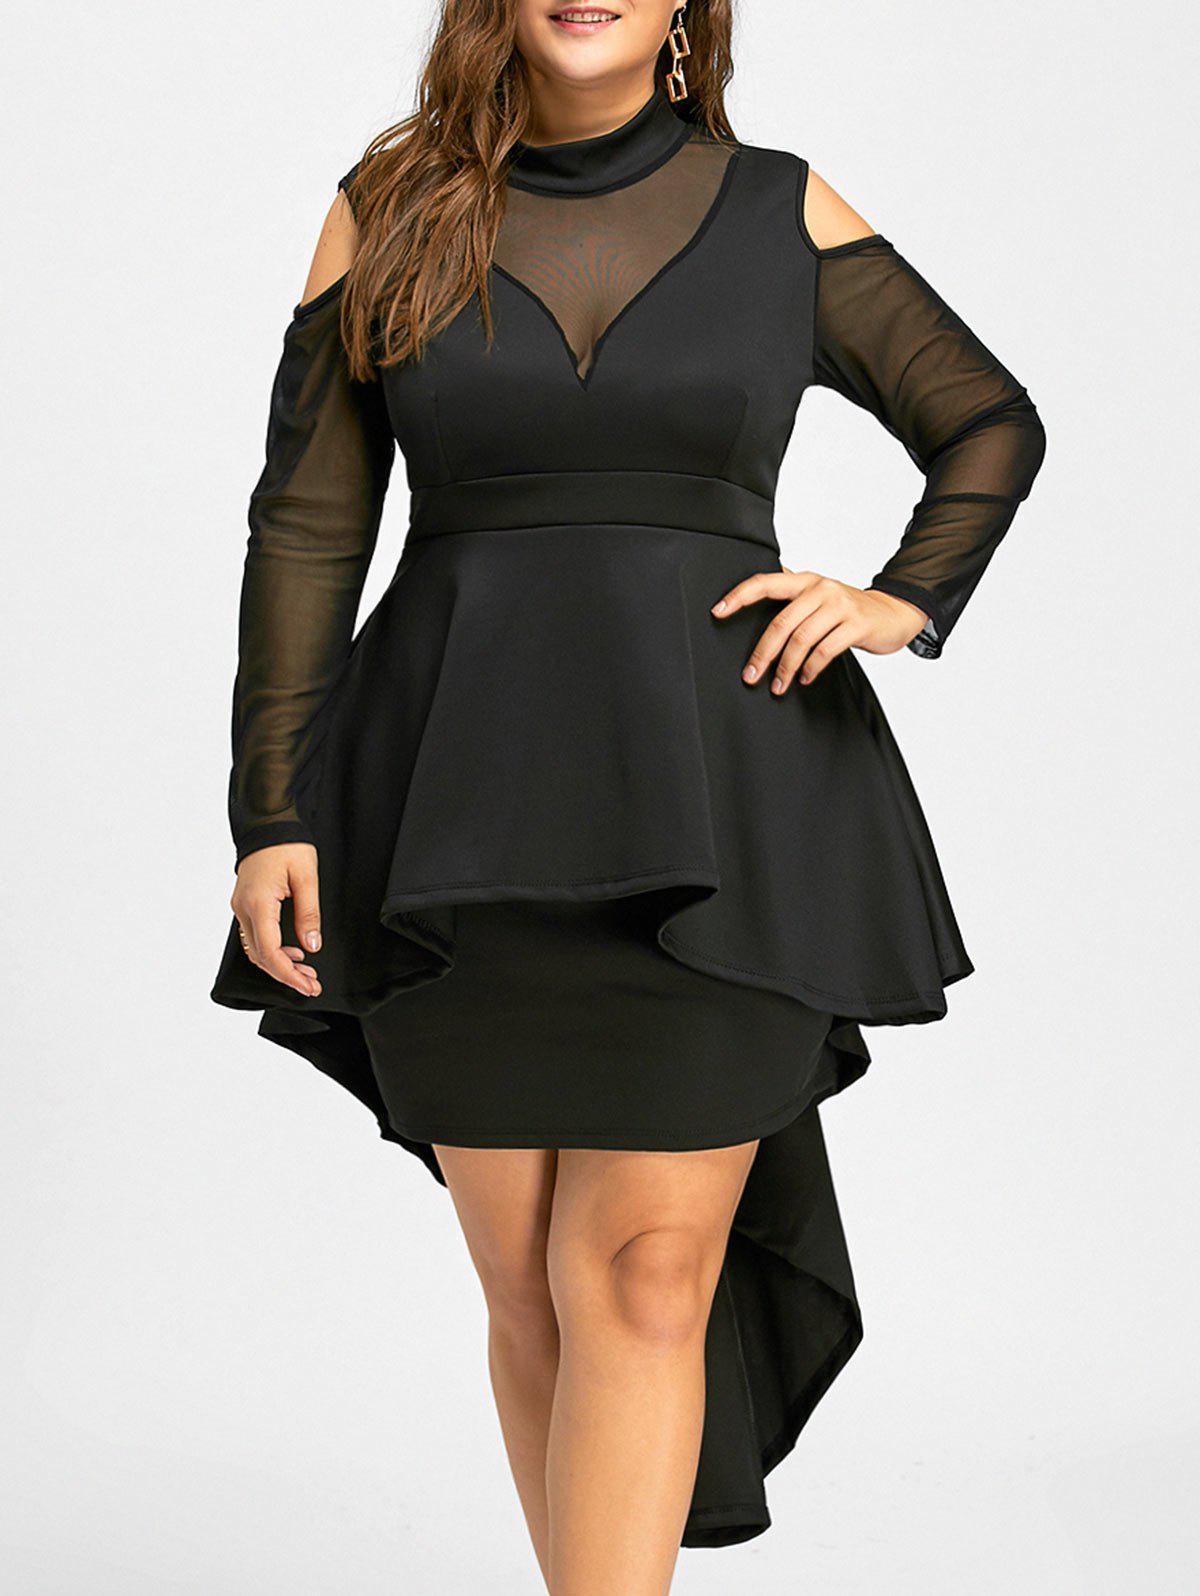 Plus Size High Low Mesh Panel Bodycon DressWOMEN<br><br>Size: 3XL; Color: BLACK; Style: Casual; Material: Cotton,Polyester; Silhouette: Bodycon; Dresses Length: Mid-Calf; Neckline: High Neck; Sleeve Length: Long Sleeves; Pattern Type: Solid; With Belt: No; Season: Fall; Weight: 0.6950kg; Package Contents: 1 x Dress;